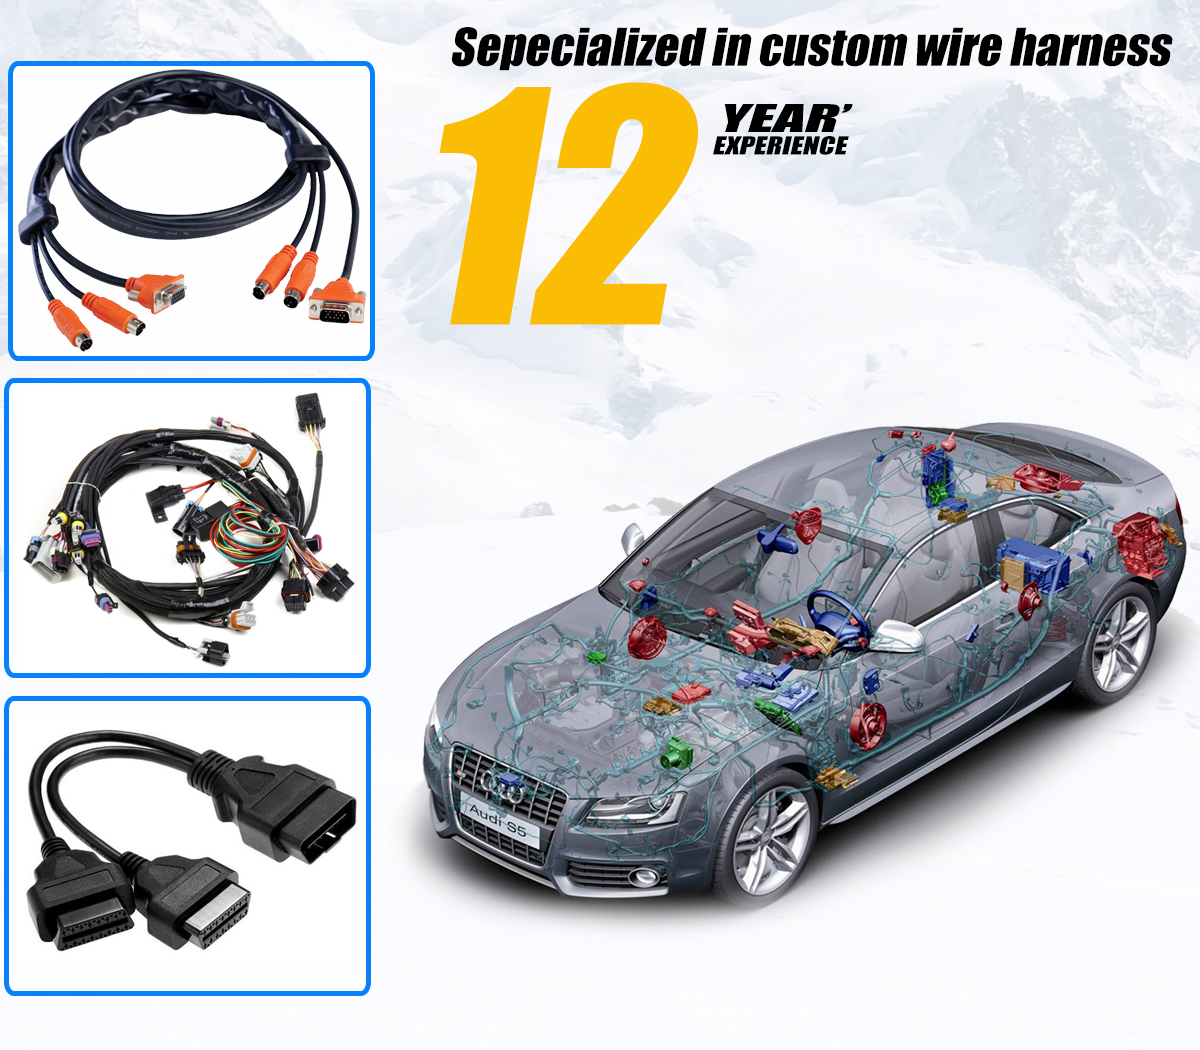 Waterproof Custom Auto Wiring Harness Schematic Diagrams Topcables Electronic Technology Limited Audio Video Cable Hot Rod Wire